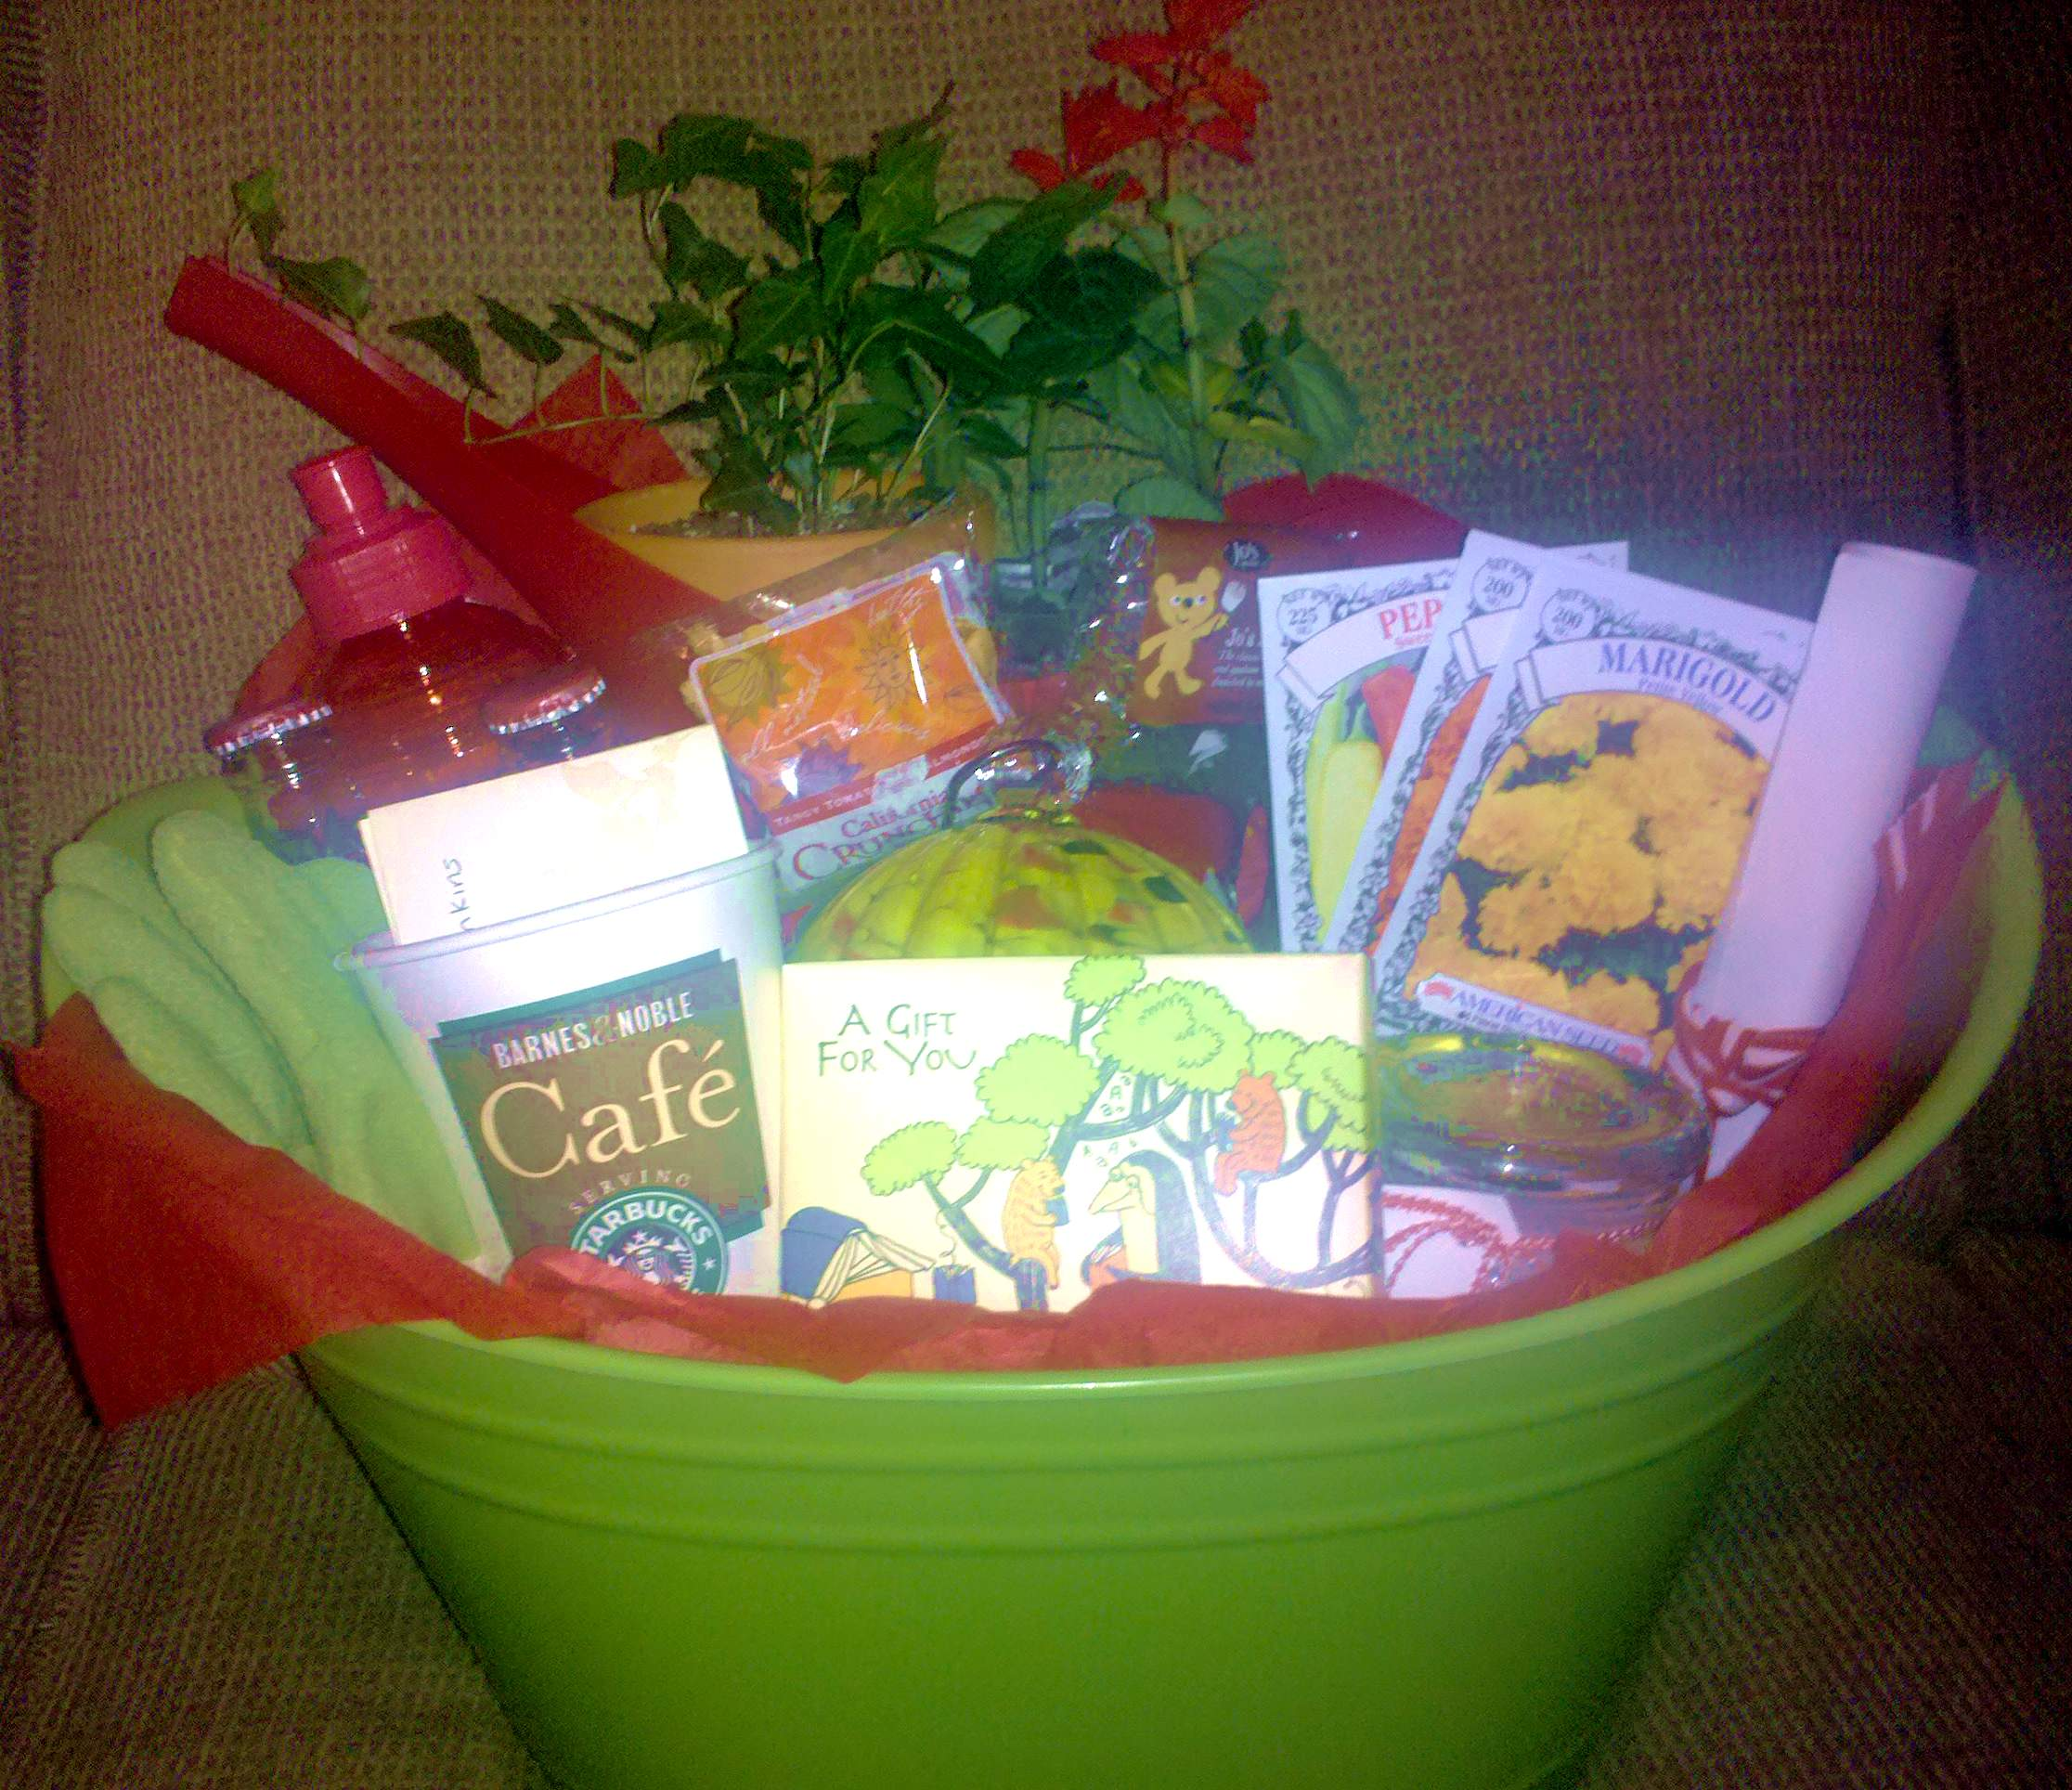 sparkly ladies!: gift basket guide